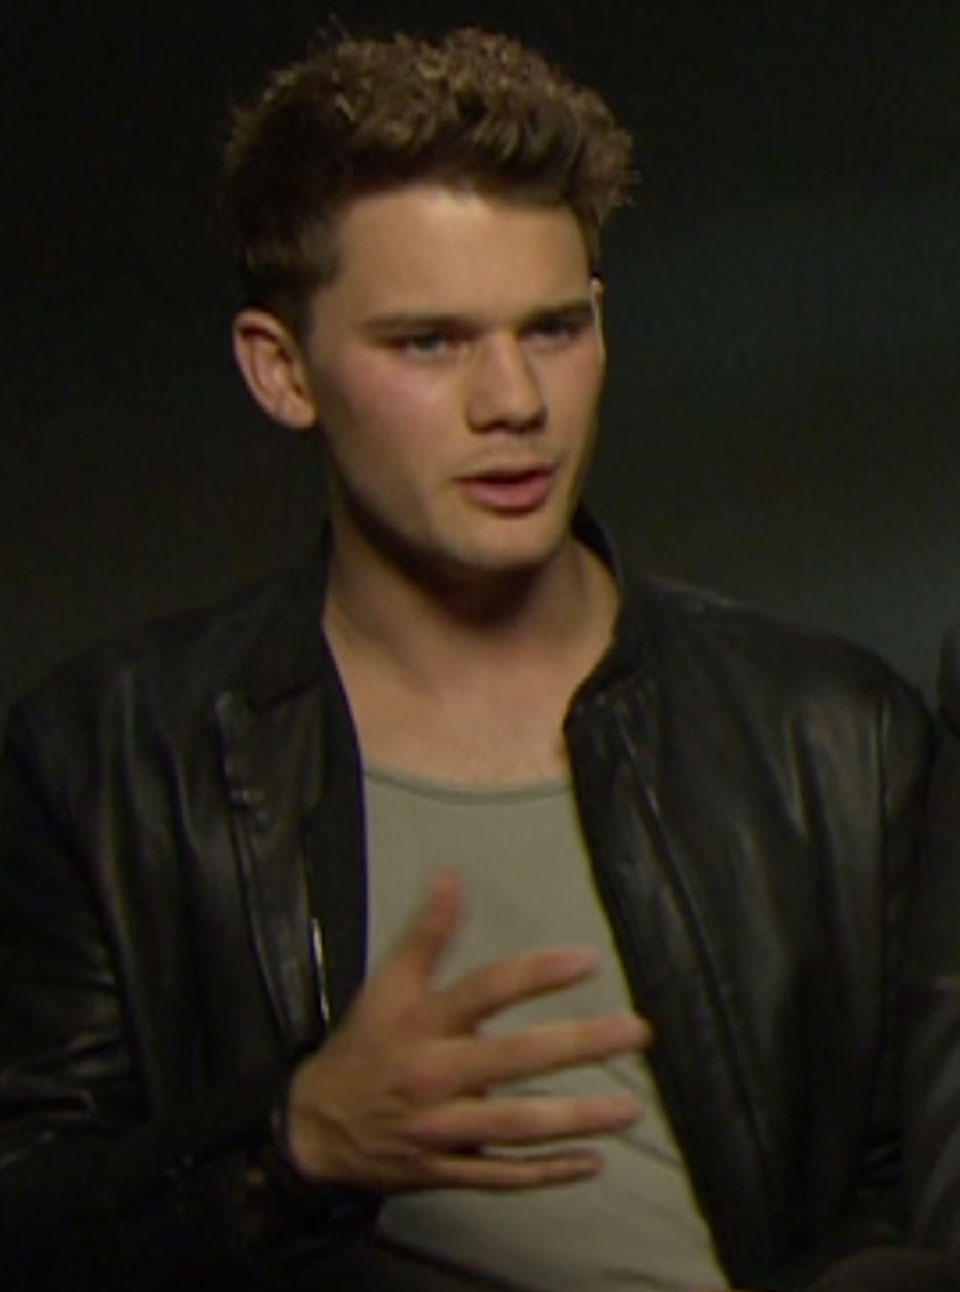 Jeremy Irvine Shirtless Now Is Good Jeremy irvine  when kateJeremy Irvine Shirtless